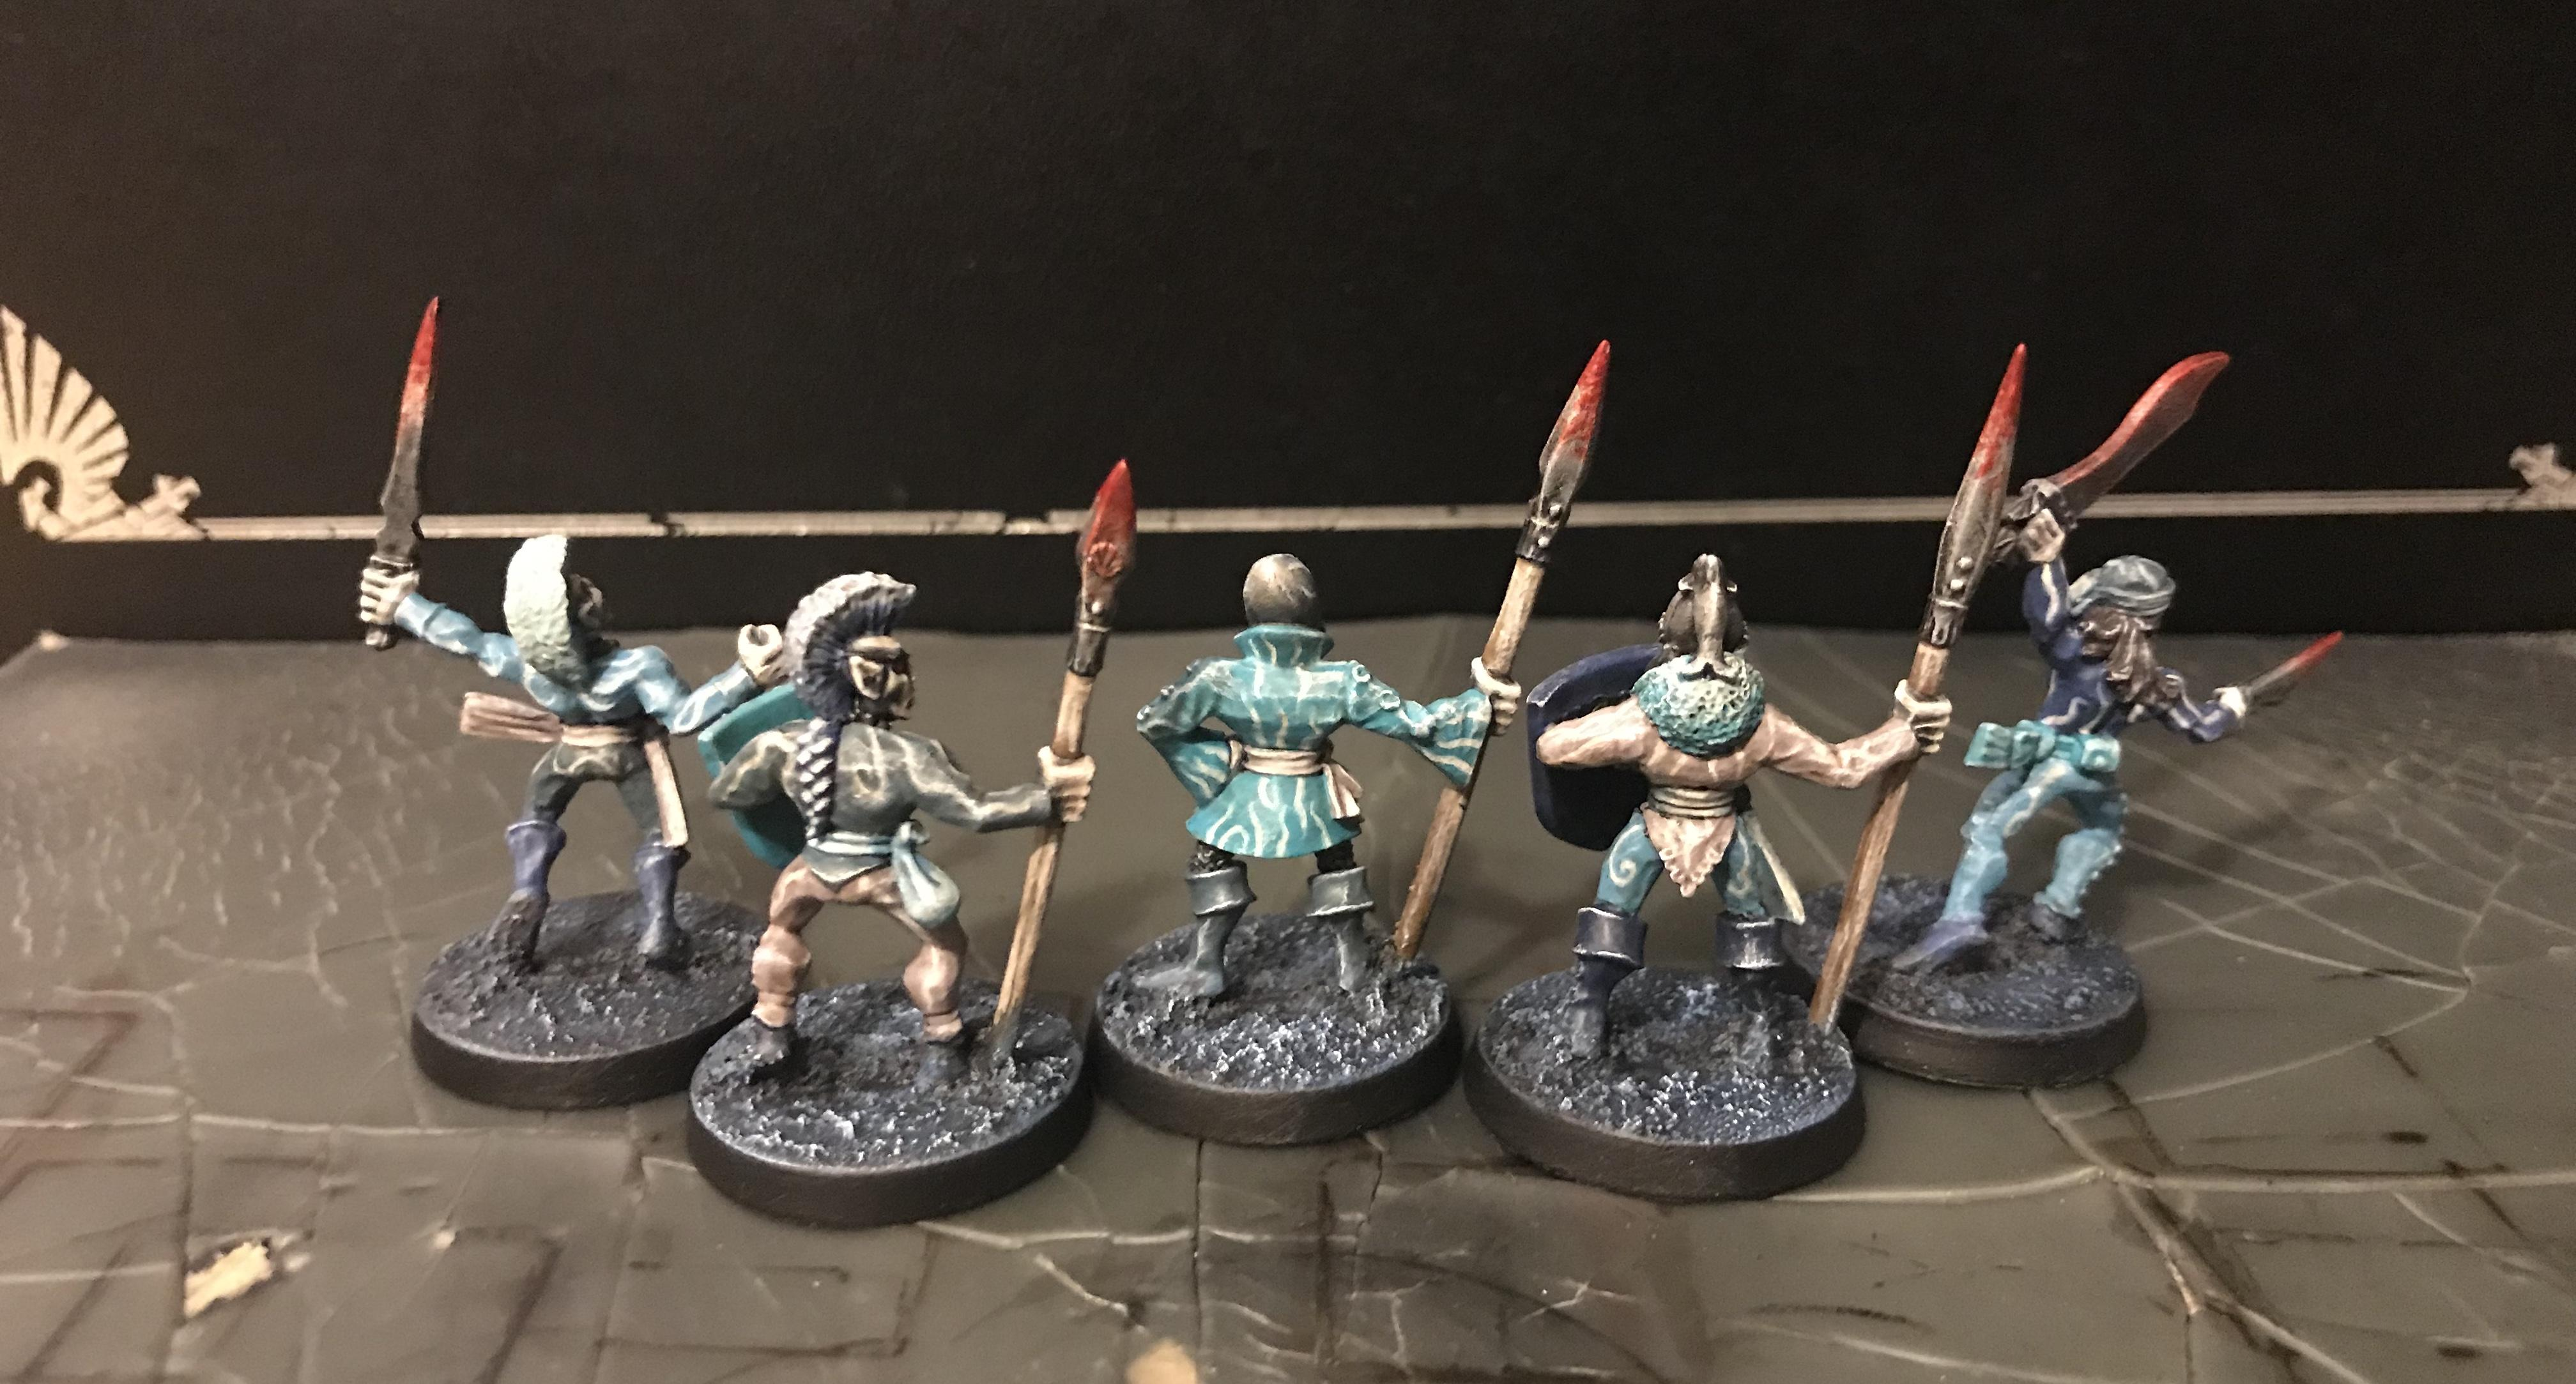 25mm, Aelf, Aelfs, Aelves, Age, Age Of Sigmar, And, Aquatic, Arrow, Battle, Battles, Blue, Bow, Citadel, City, Cold, Colors, Creature, Creatures, Dark, Elfs, Elves, End, Guard, High, Infantry, Lothern, Marauders, Mariner, Mariners, Medieval, Metal, Miniatures, Minis, Models, Mordheim, Mortal, Of, Old, Olde, Oldhammer, Painted, Play, Realms, Role, Sailing, Sailor, Sails, Sea, Sea Elves, Sigmar, Skirmish, Soldiers, Space Marines, Spear, Sword, The, Times, Vibrant, Warhammer Fantasy, Whf, Whfbrp, Woodland, World, Worlde